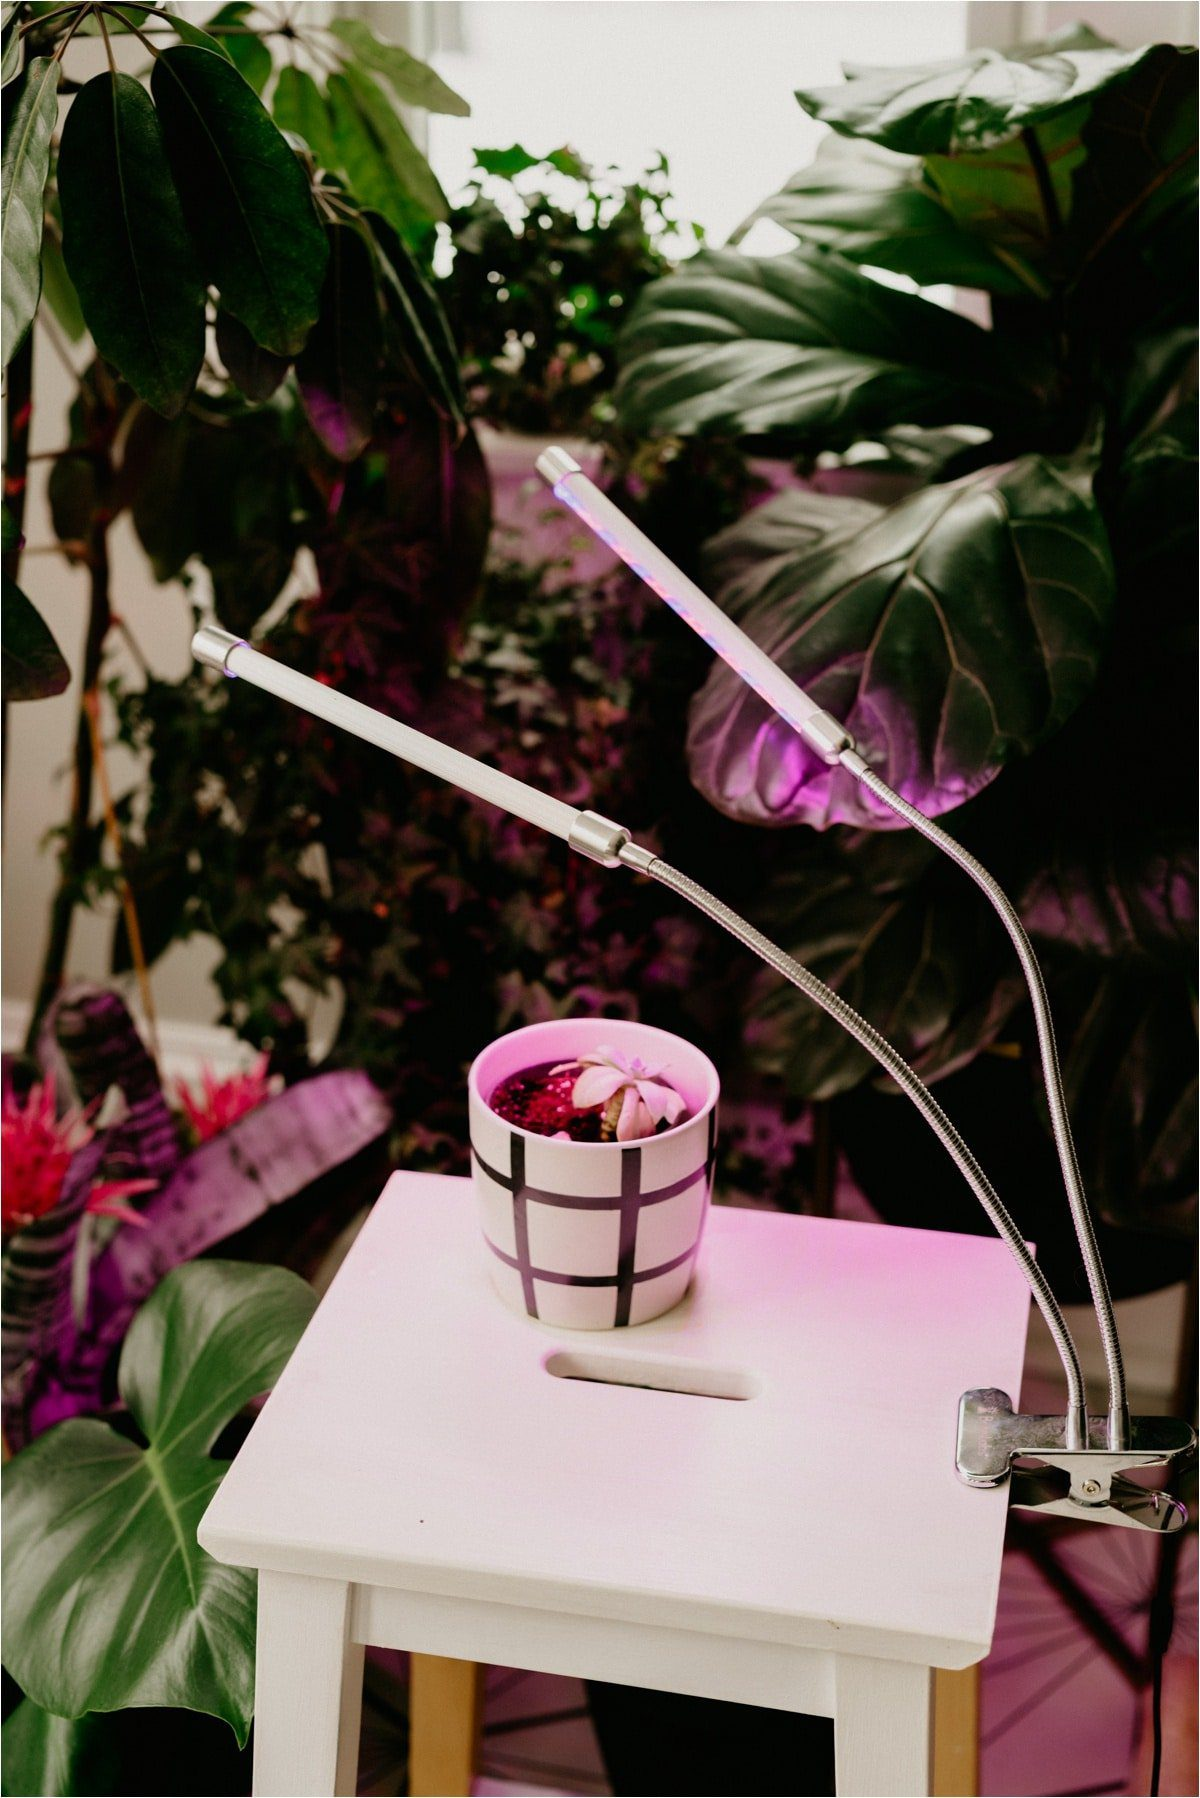 can plants live on artificial light